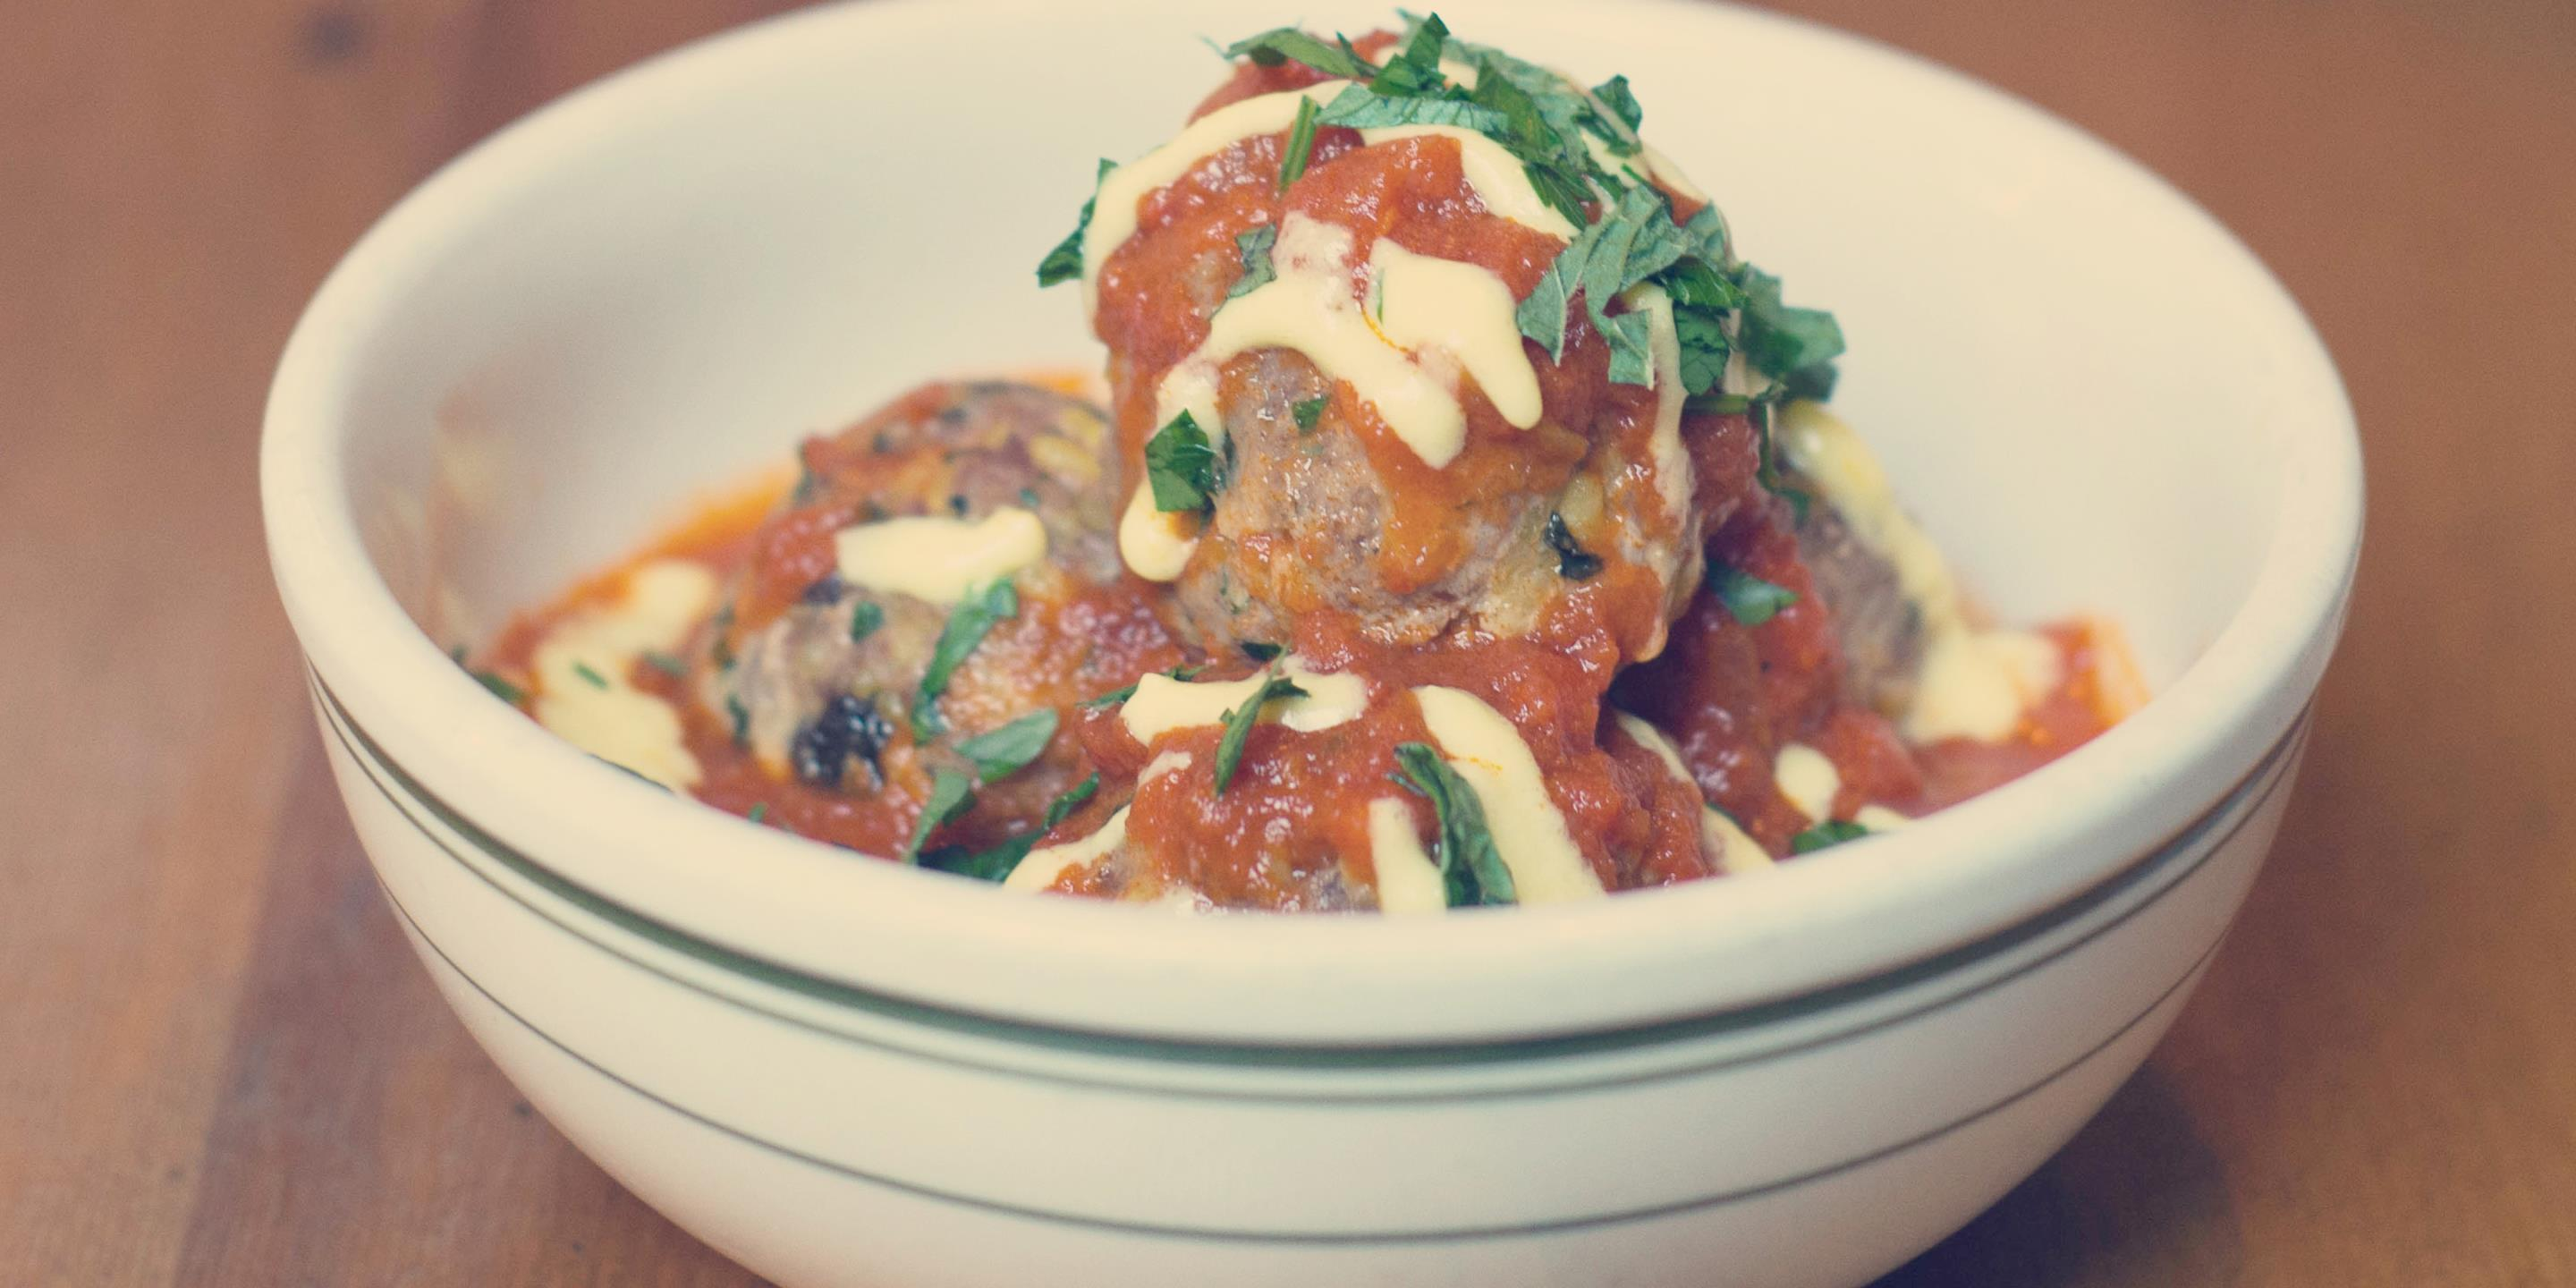 Healthy meatball is no longer an oxymoron - Furthermore